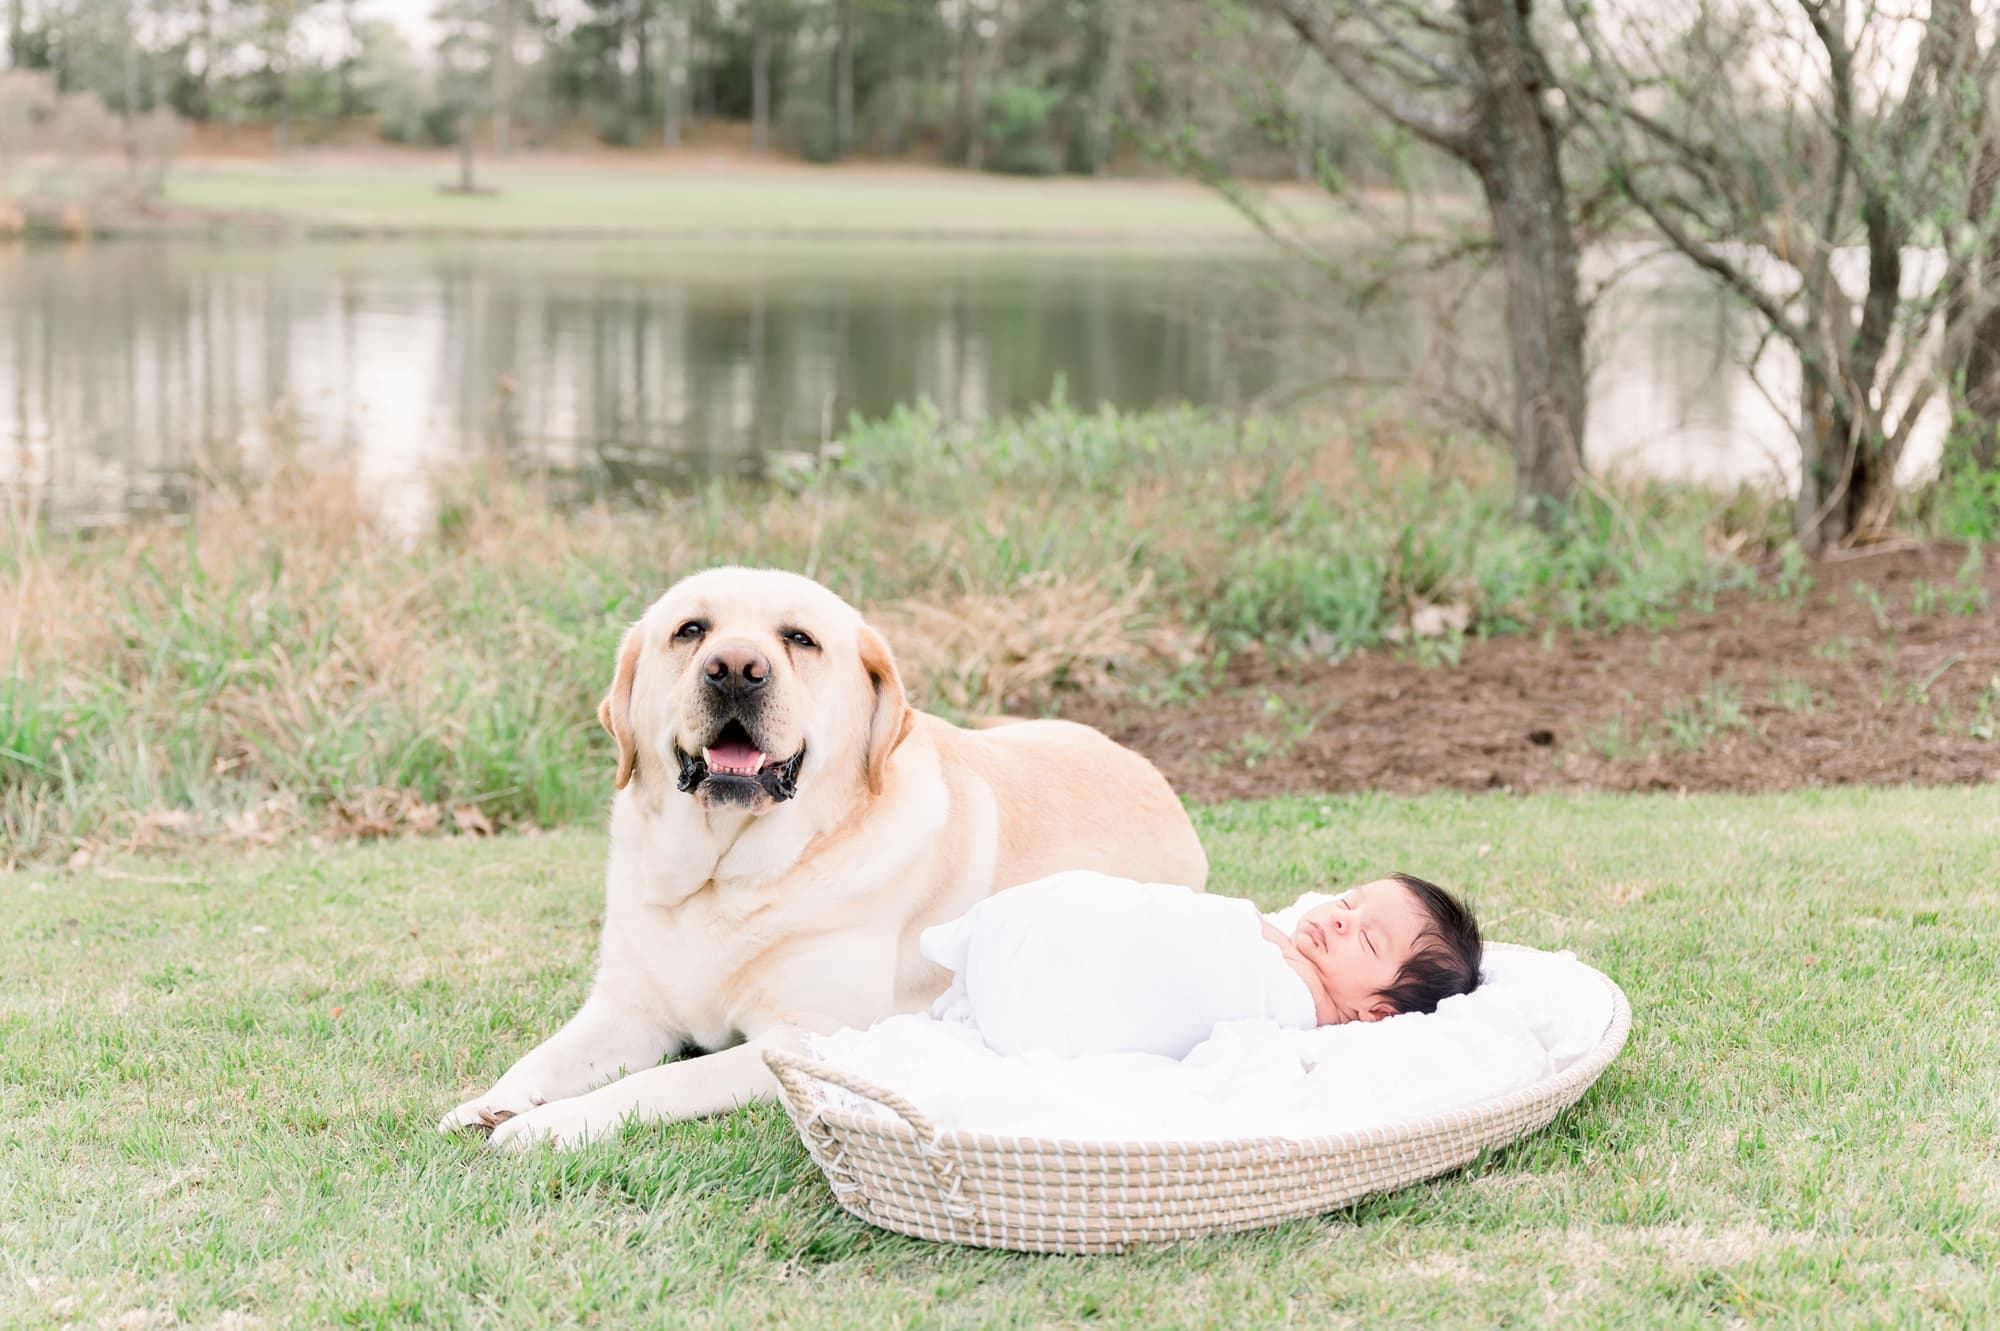 Family dog laying next to baby in Moses basket during outdoor newborn session. Photo by Aimee Hamilton Photography.